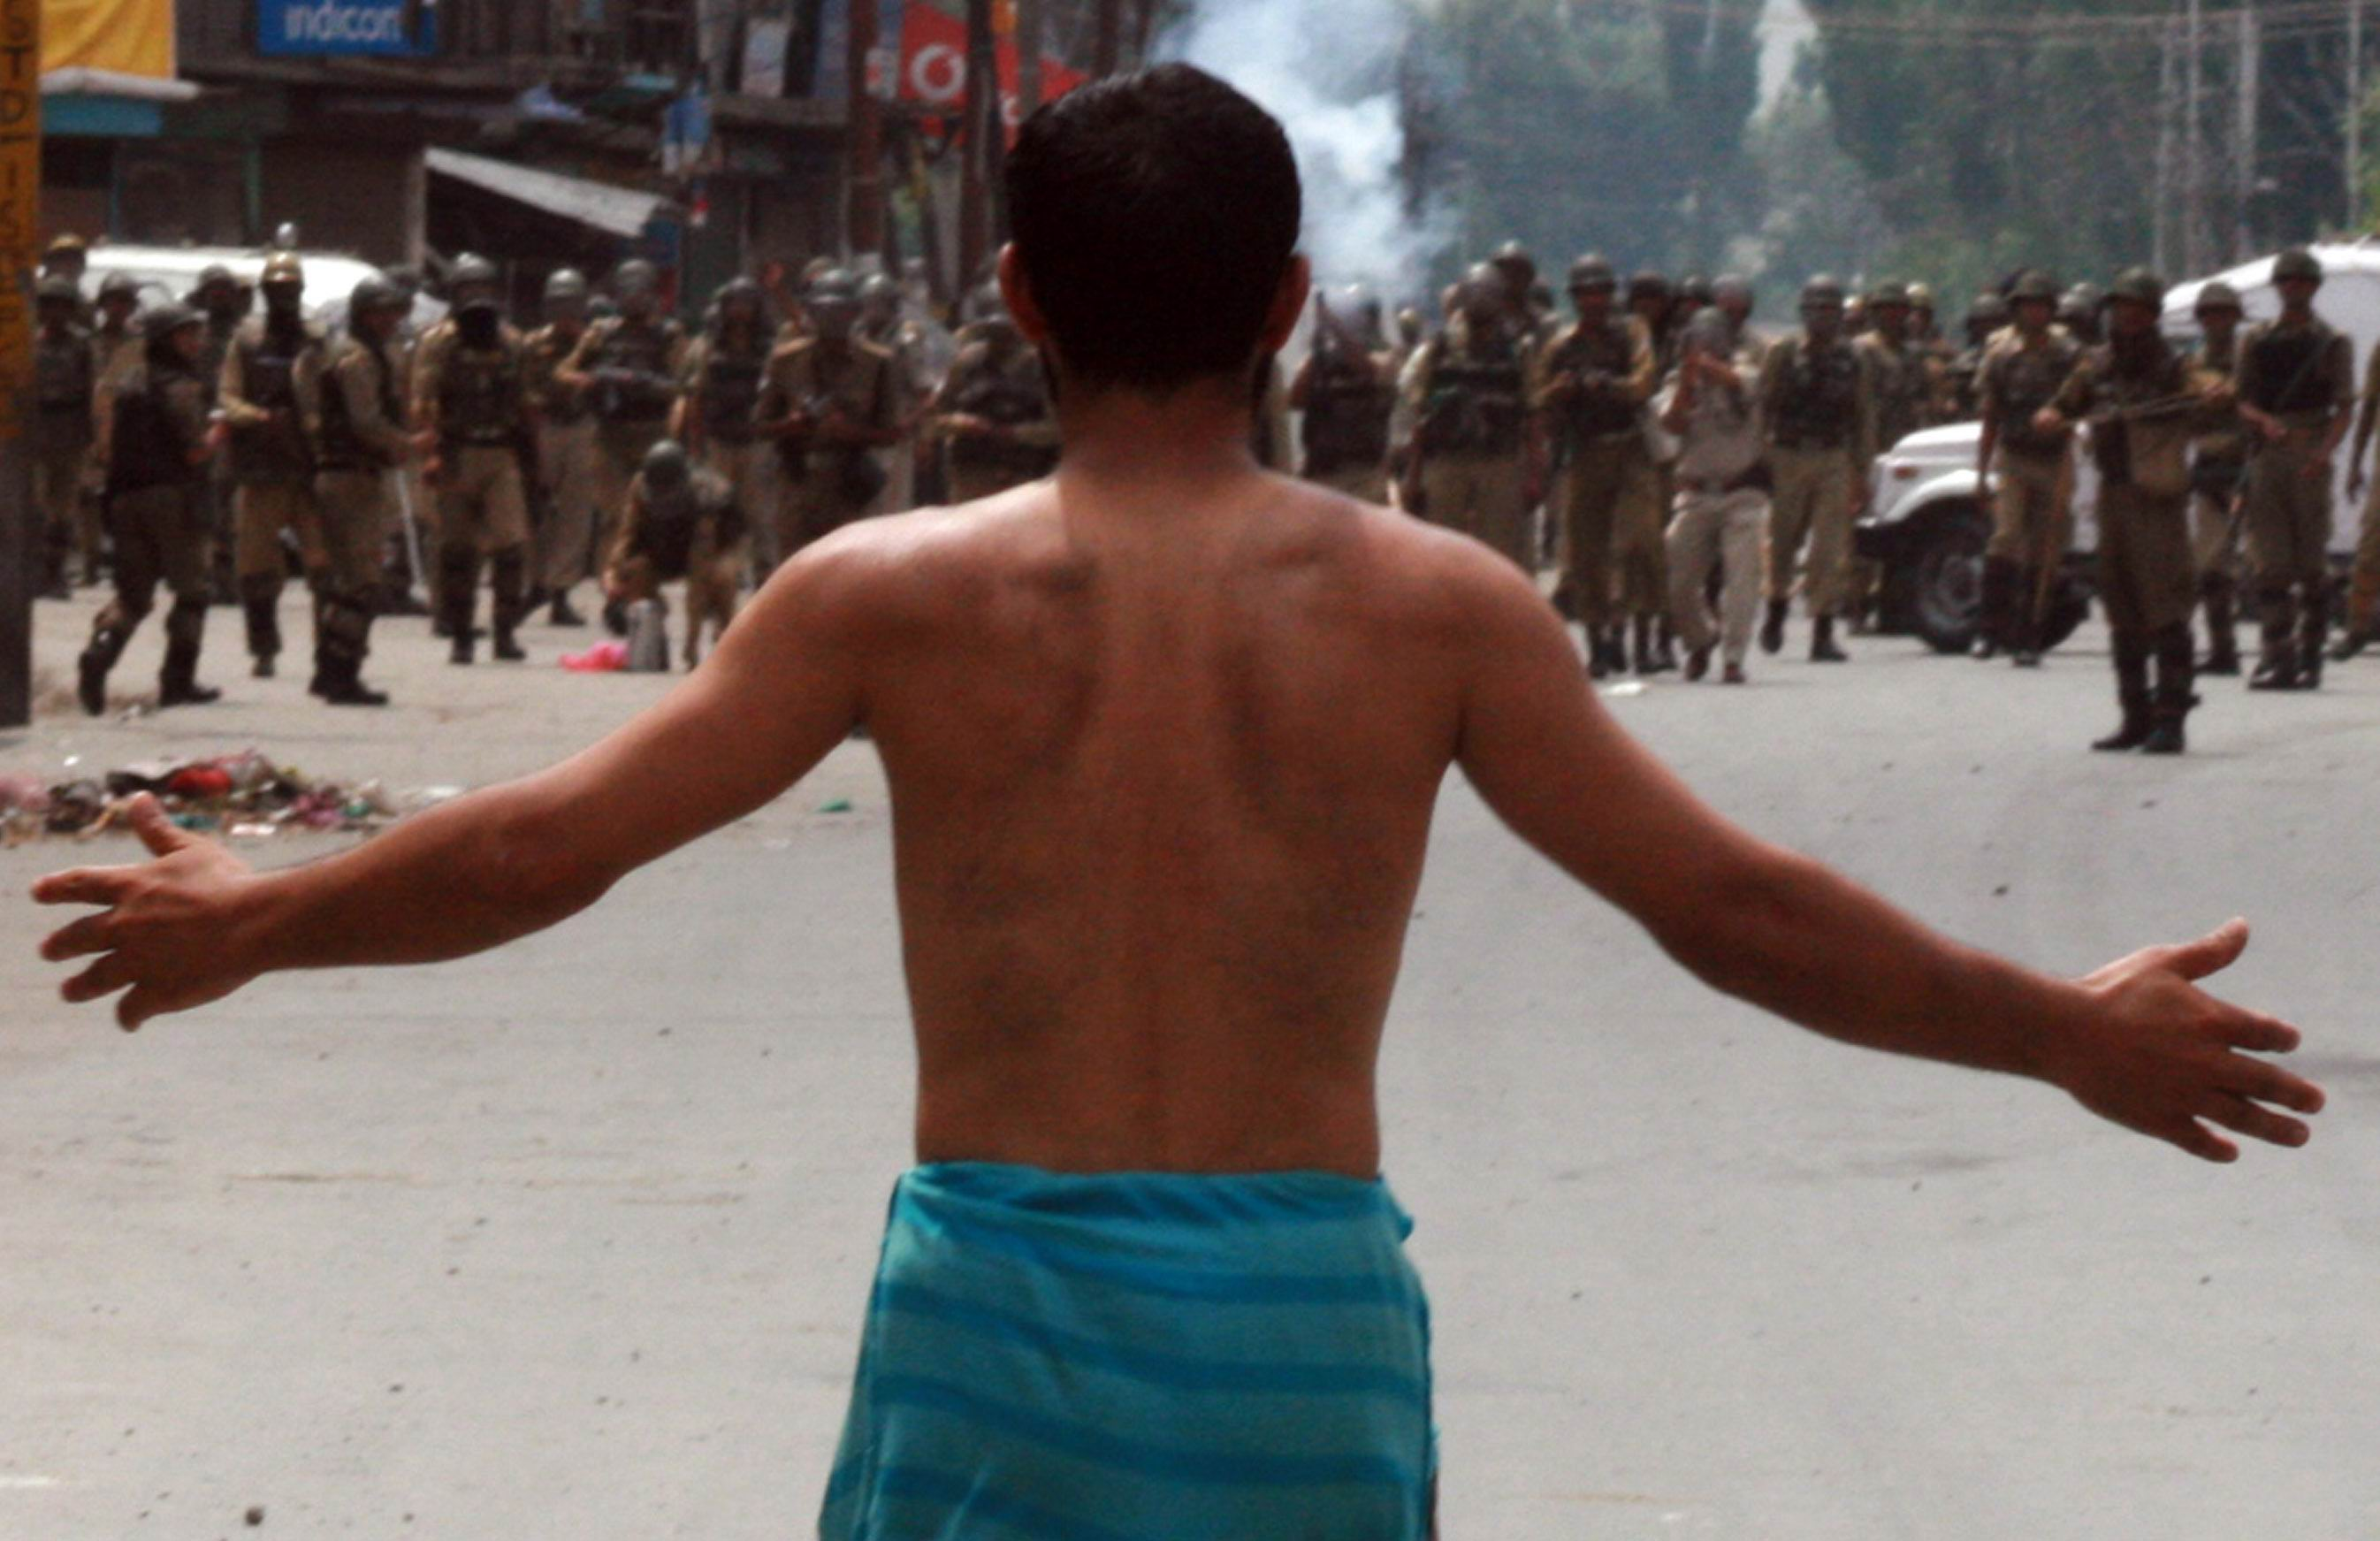 photo essay kashmir bullets for stones ceasefire magazine a